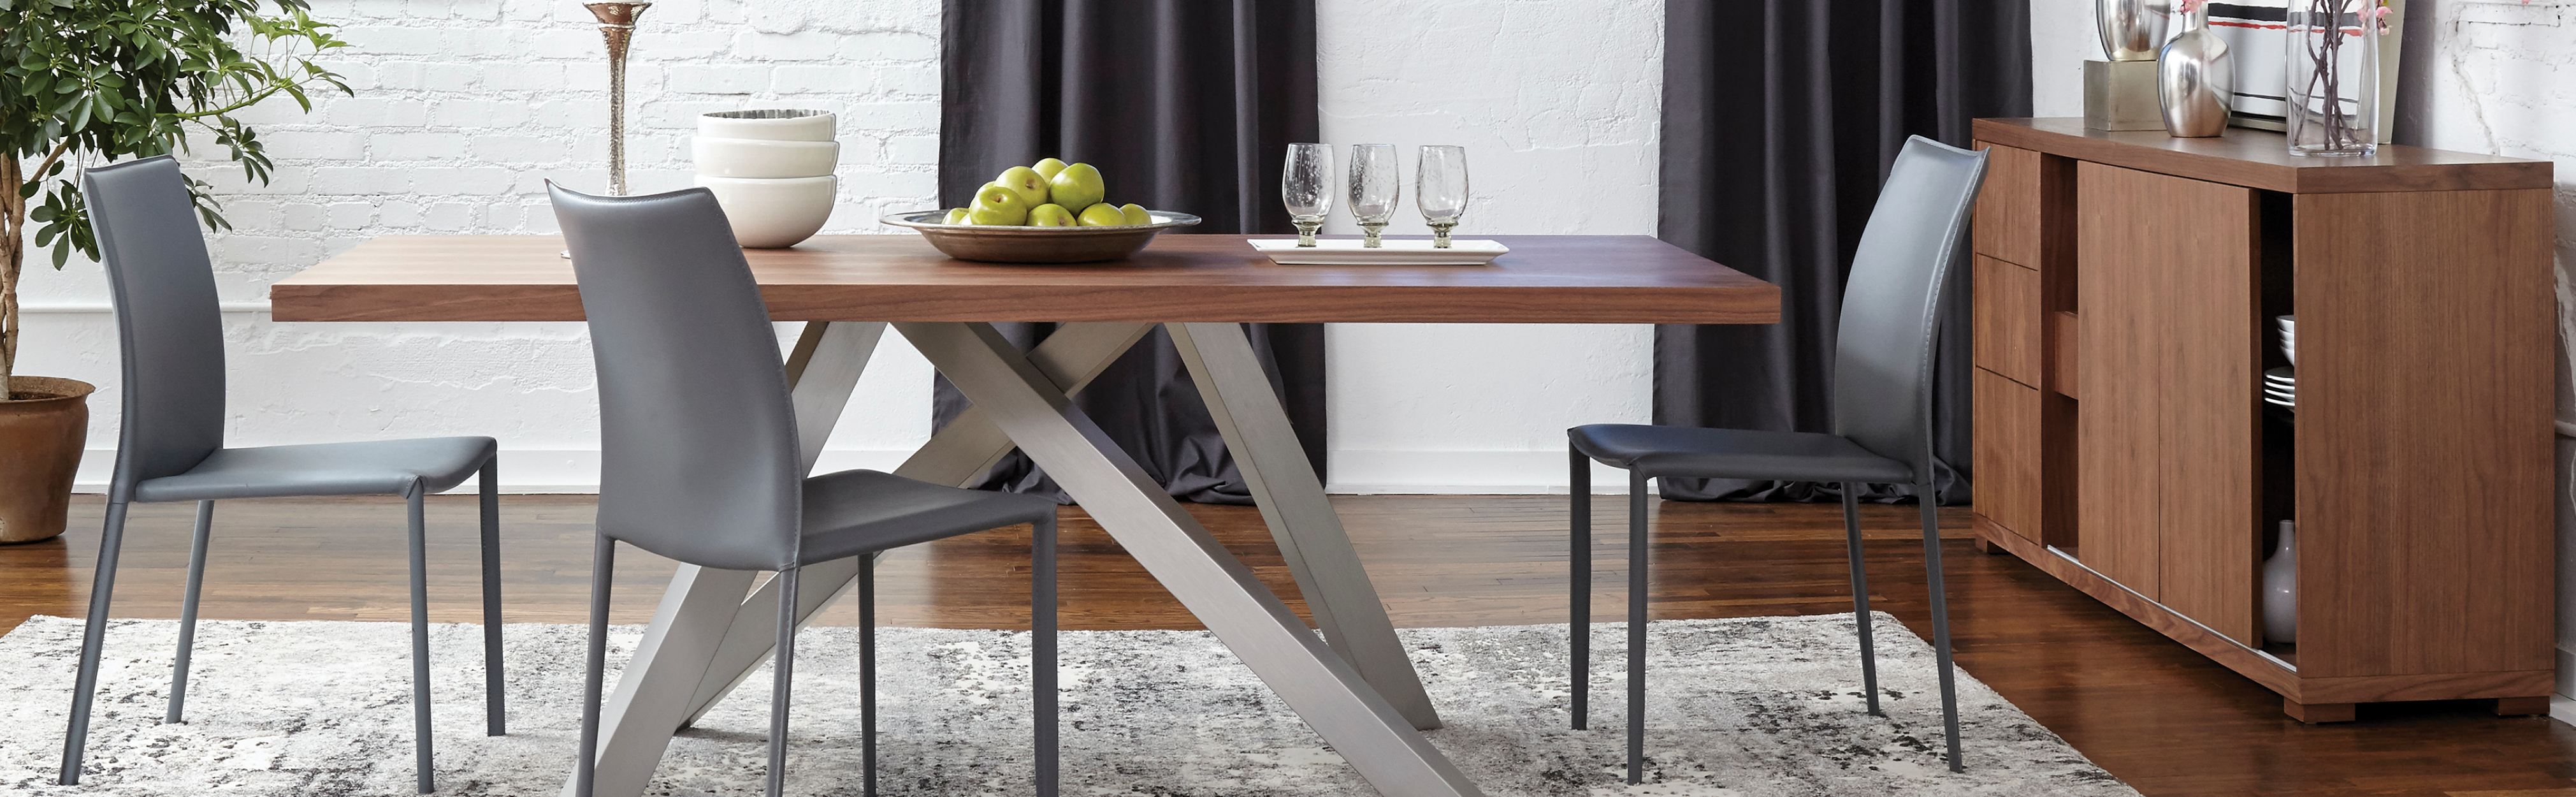 Exceptional Furniture With Taste